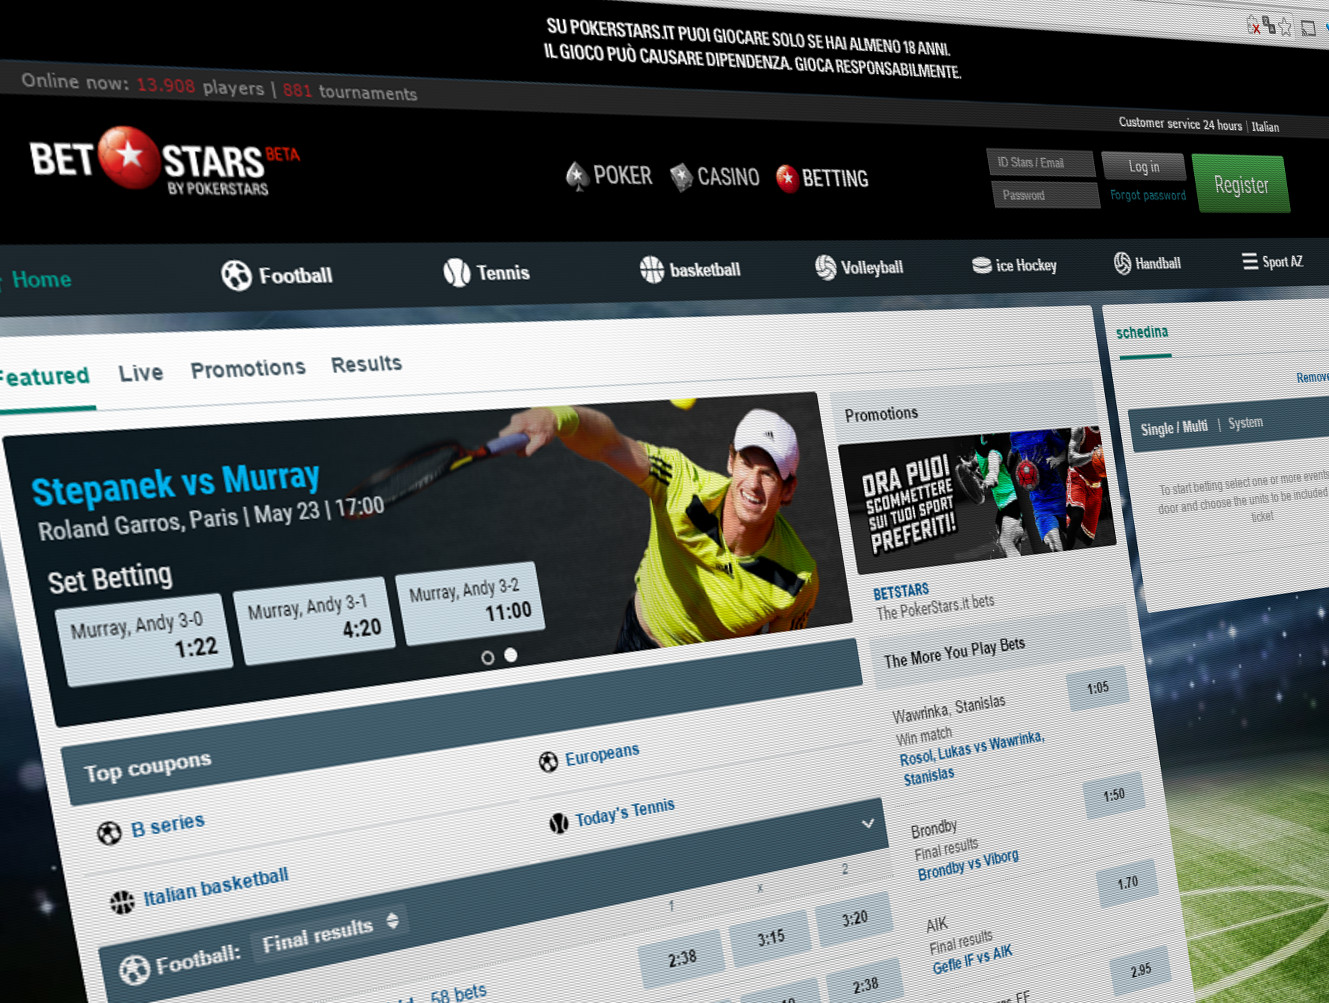 Pokerstars sports betting wie funktioniert localbitcoins